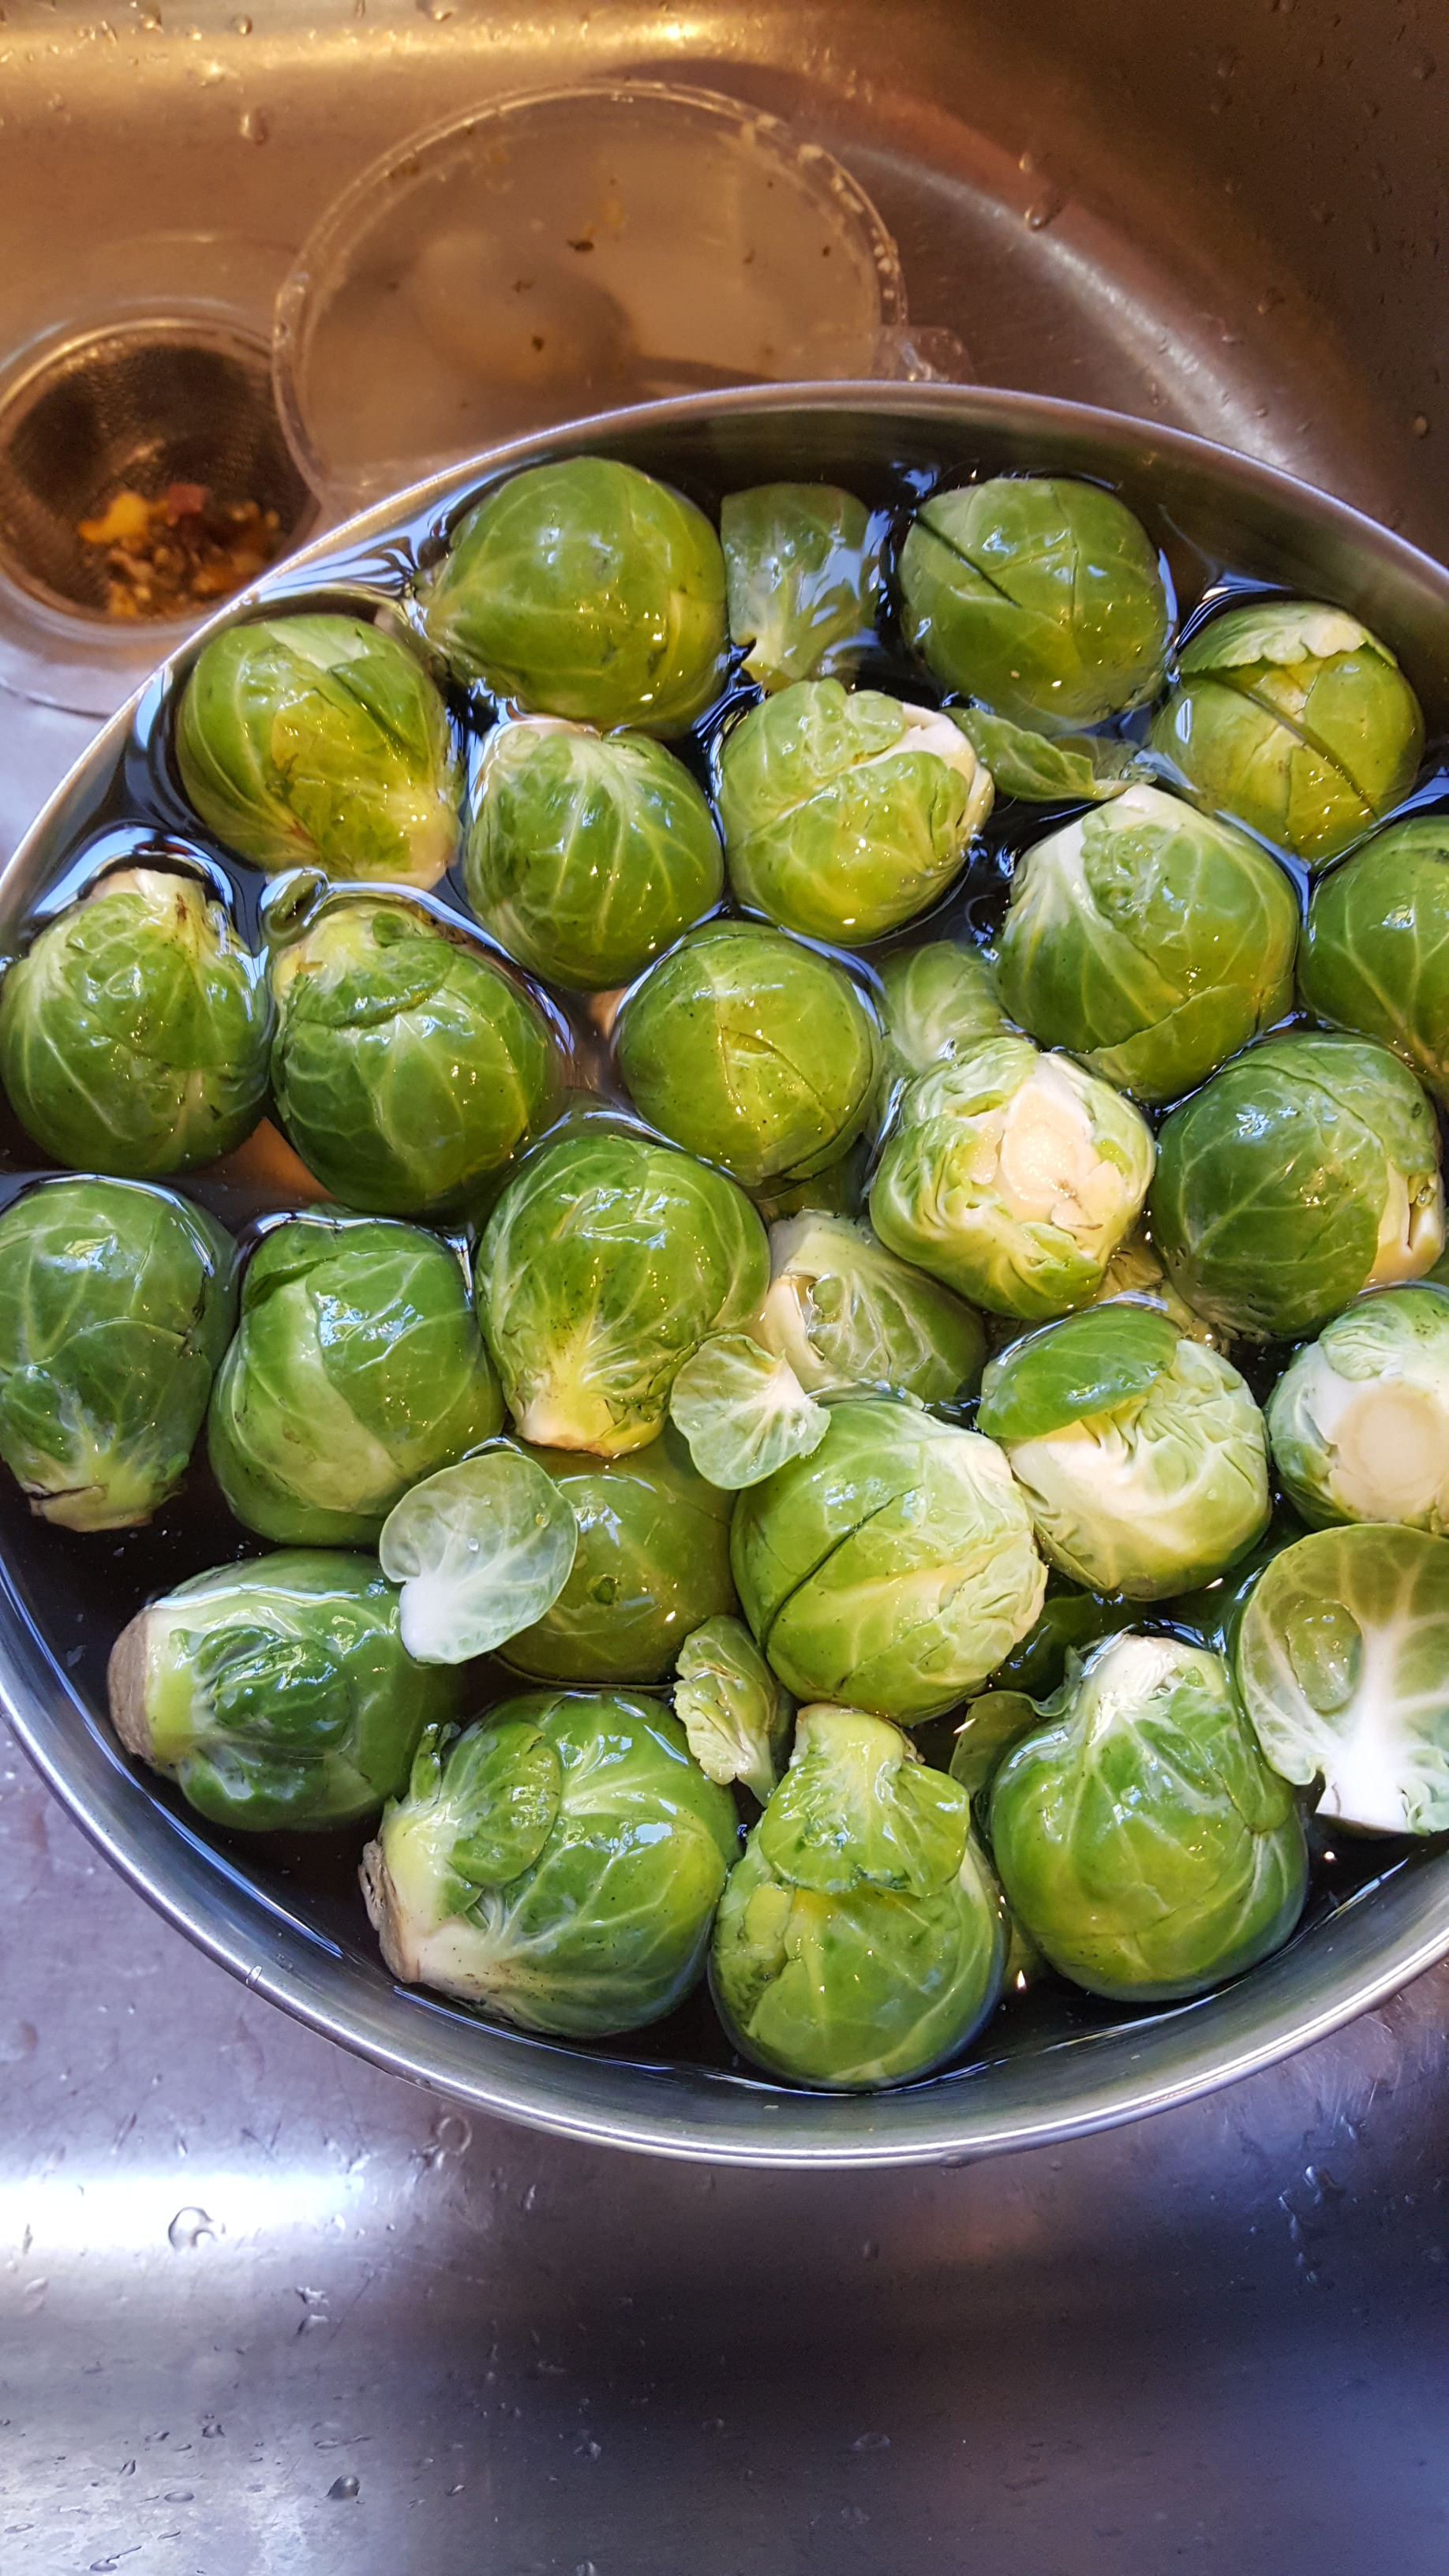 Picture of Wash and Prepare Brussel Spouts